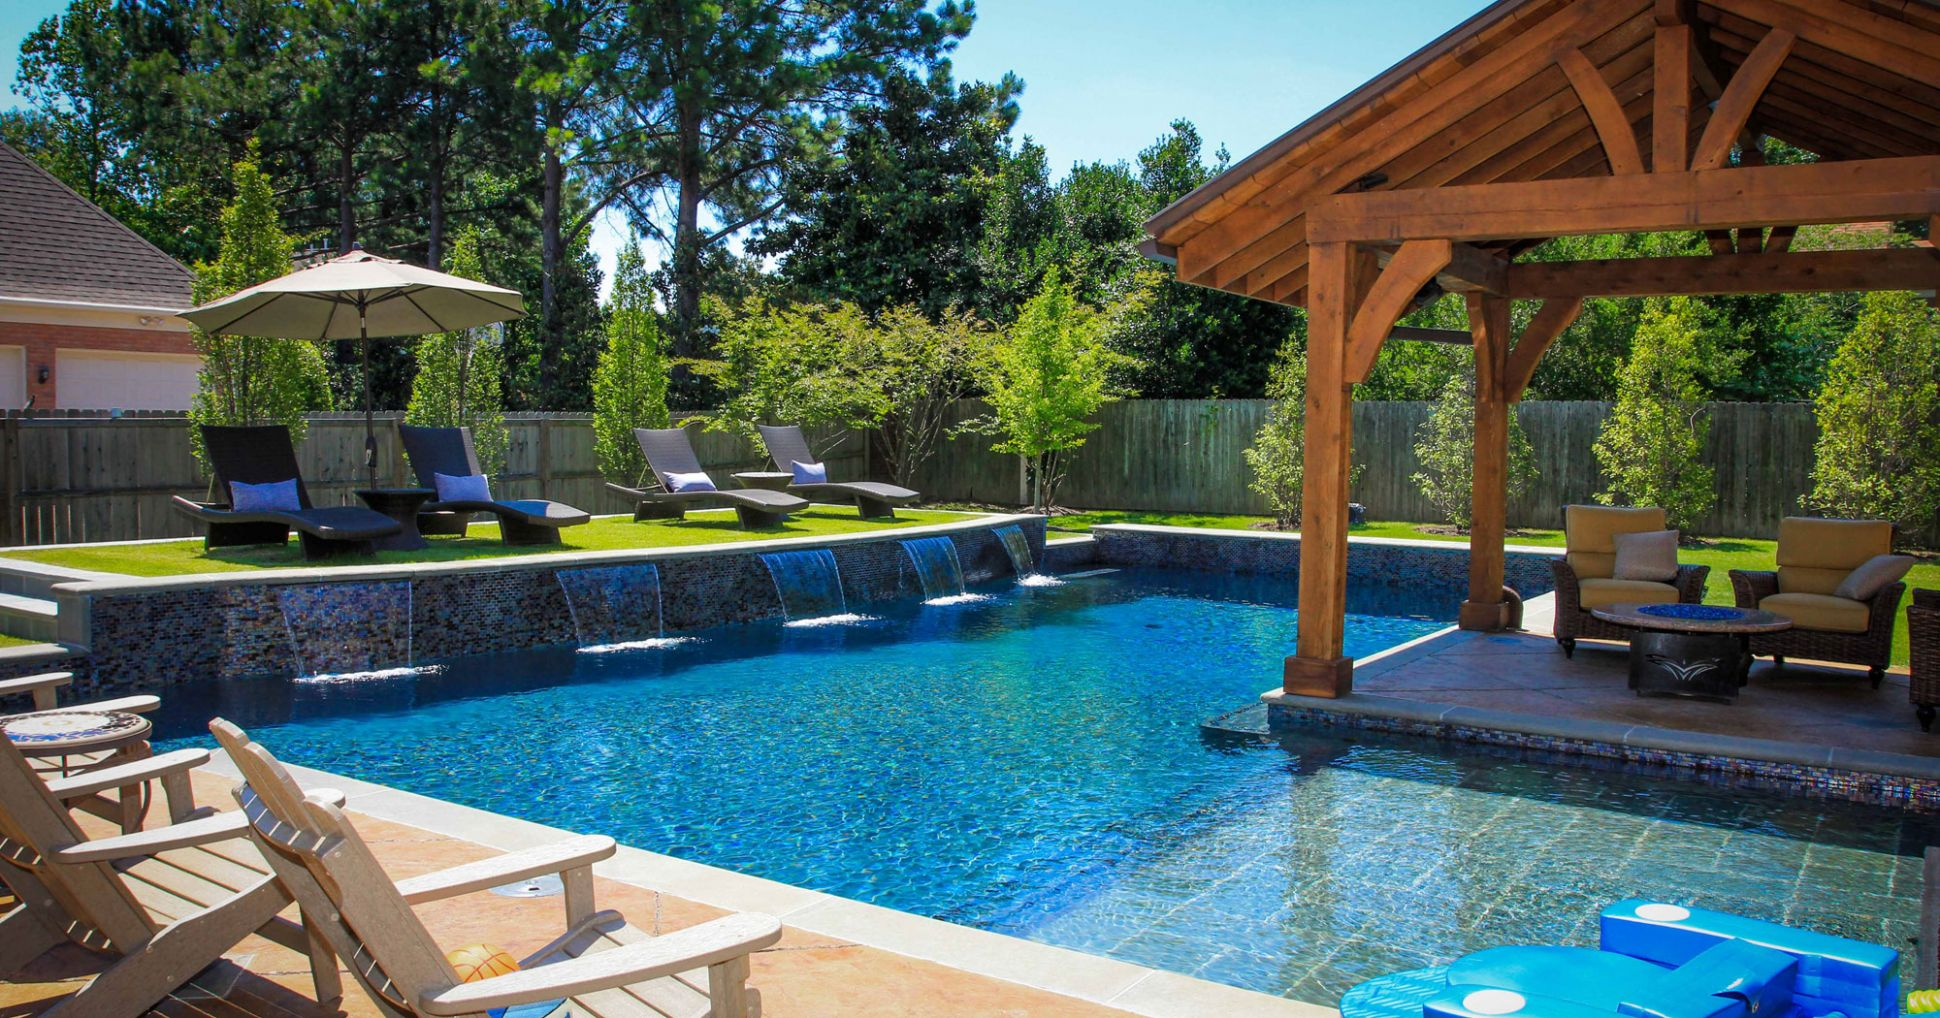 10 Backyard Pool Ideas for the Wealthy Homeowner